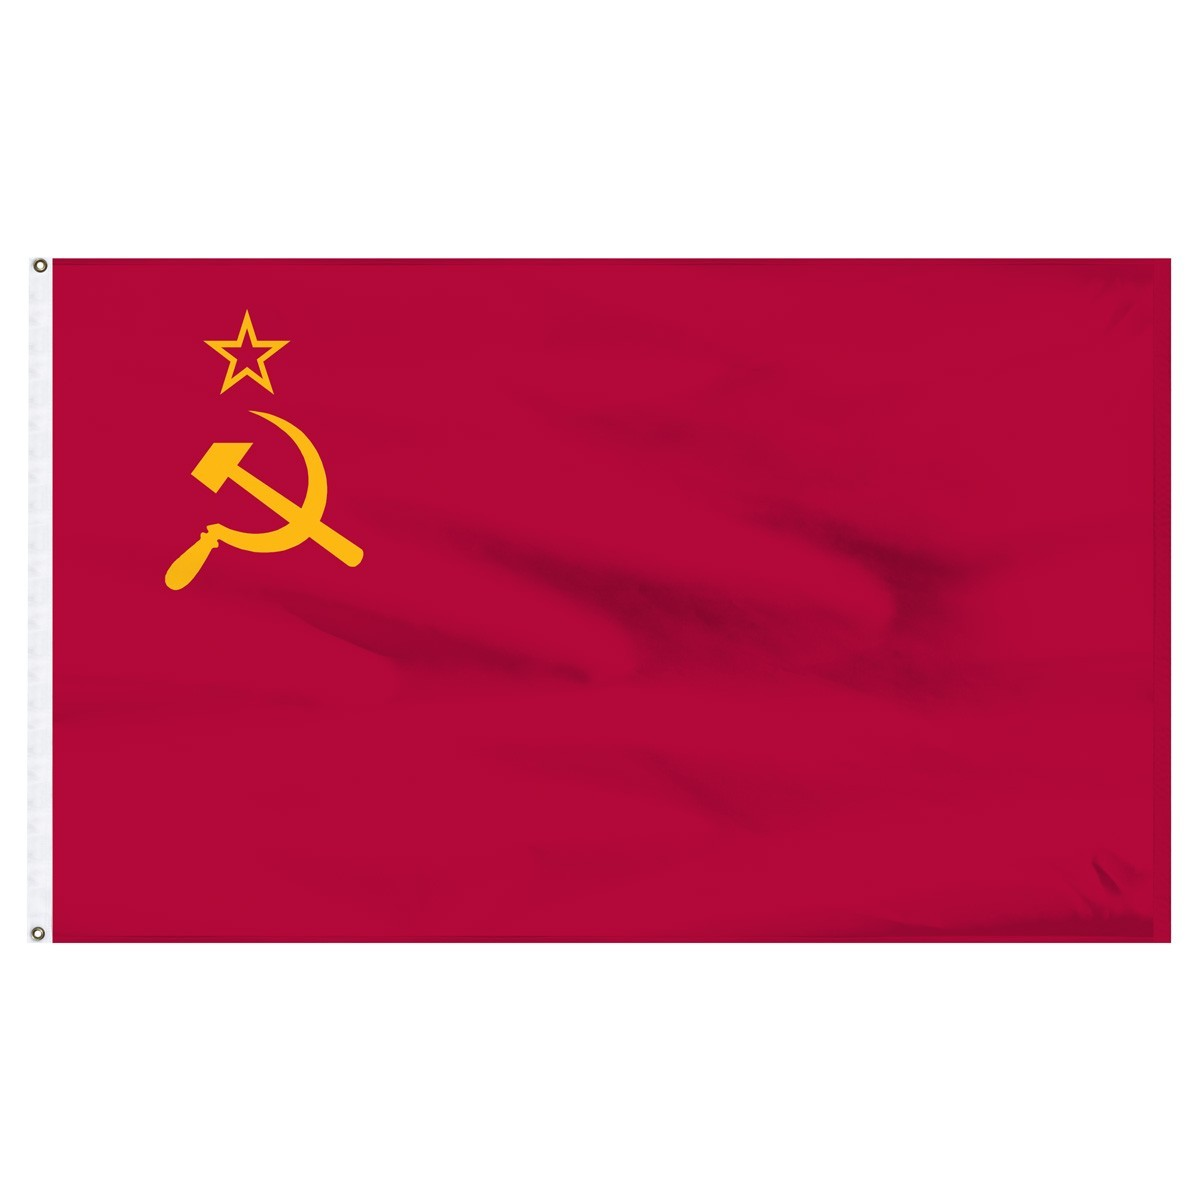 USSR 3' x 5' Outdoor Nylon Flag